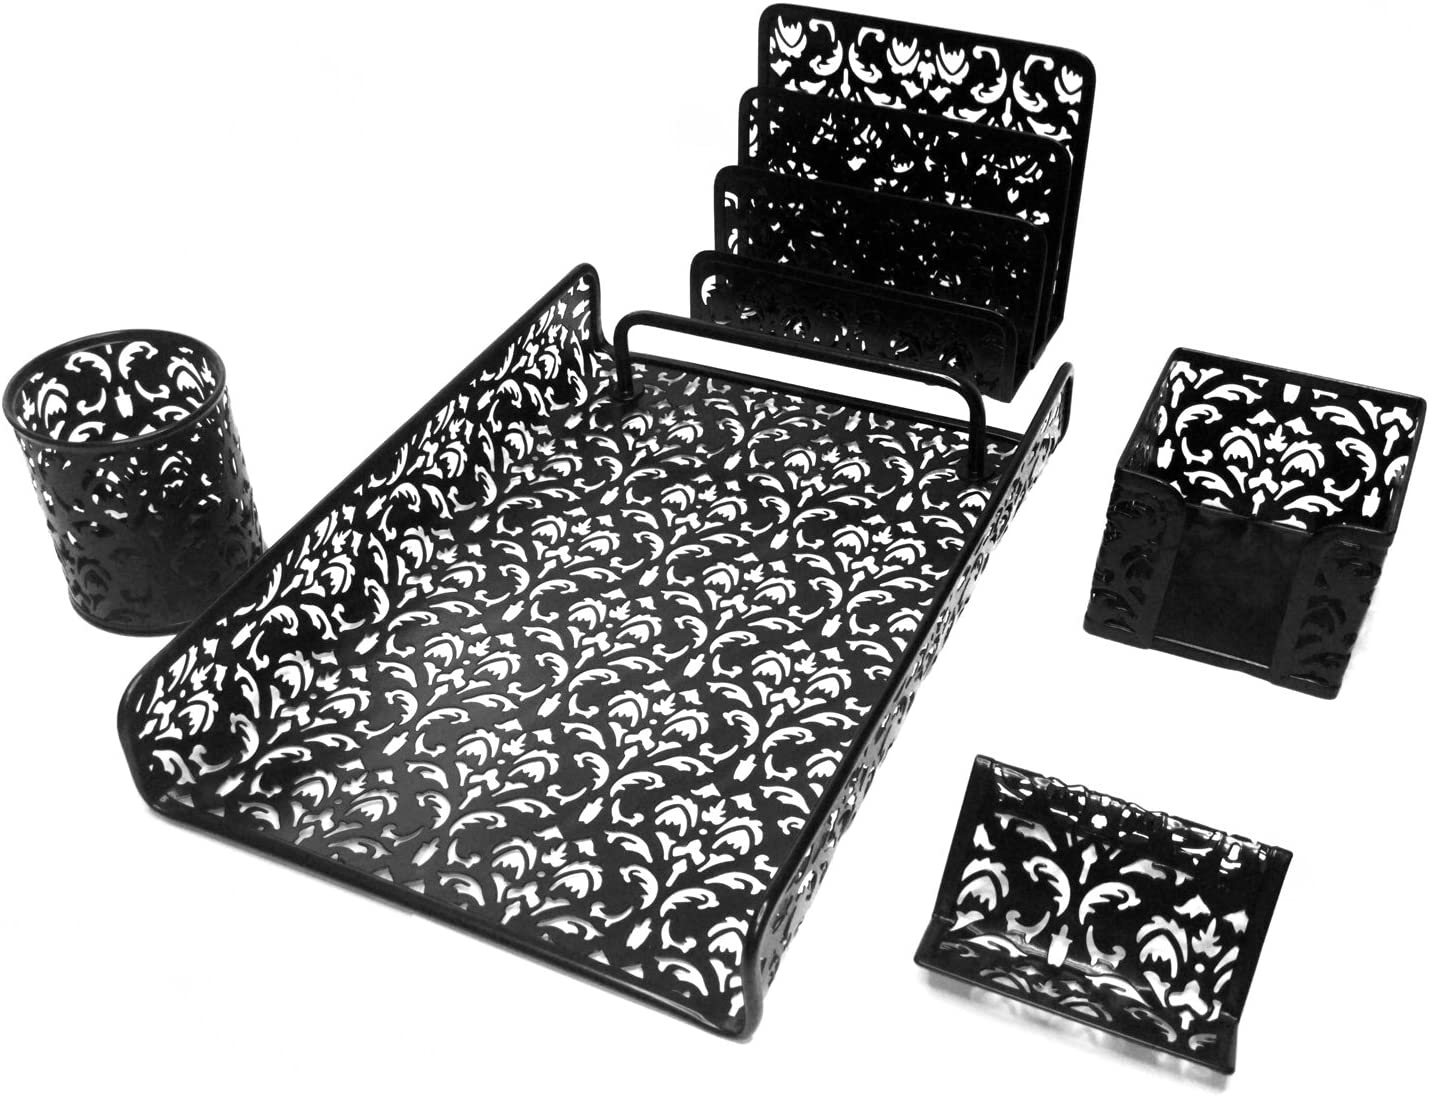 Majestic Goods 5 Piece Flower Free shipping anywhere in the nation Design Office Mesh D Punched Max 54% OFF Metal